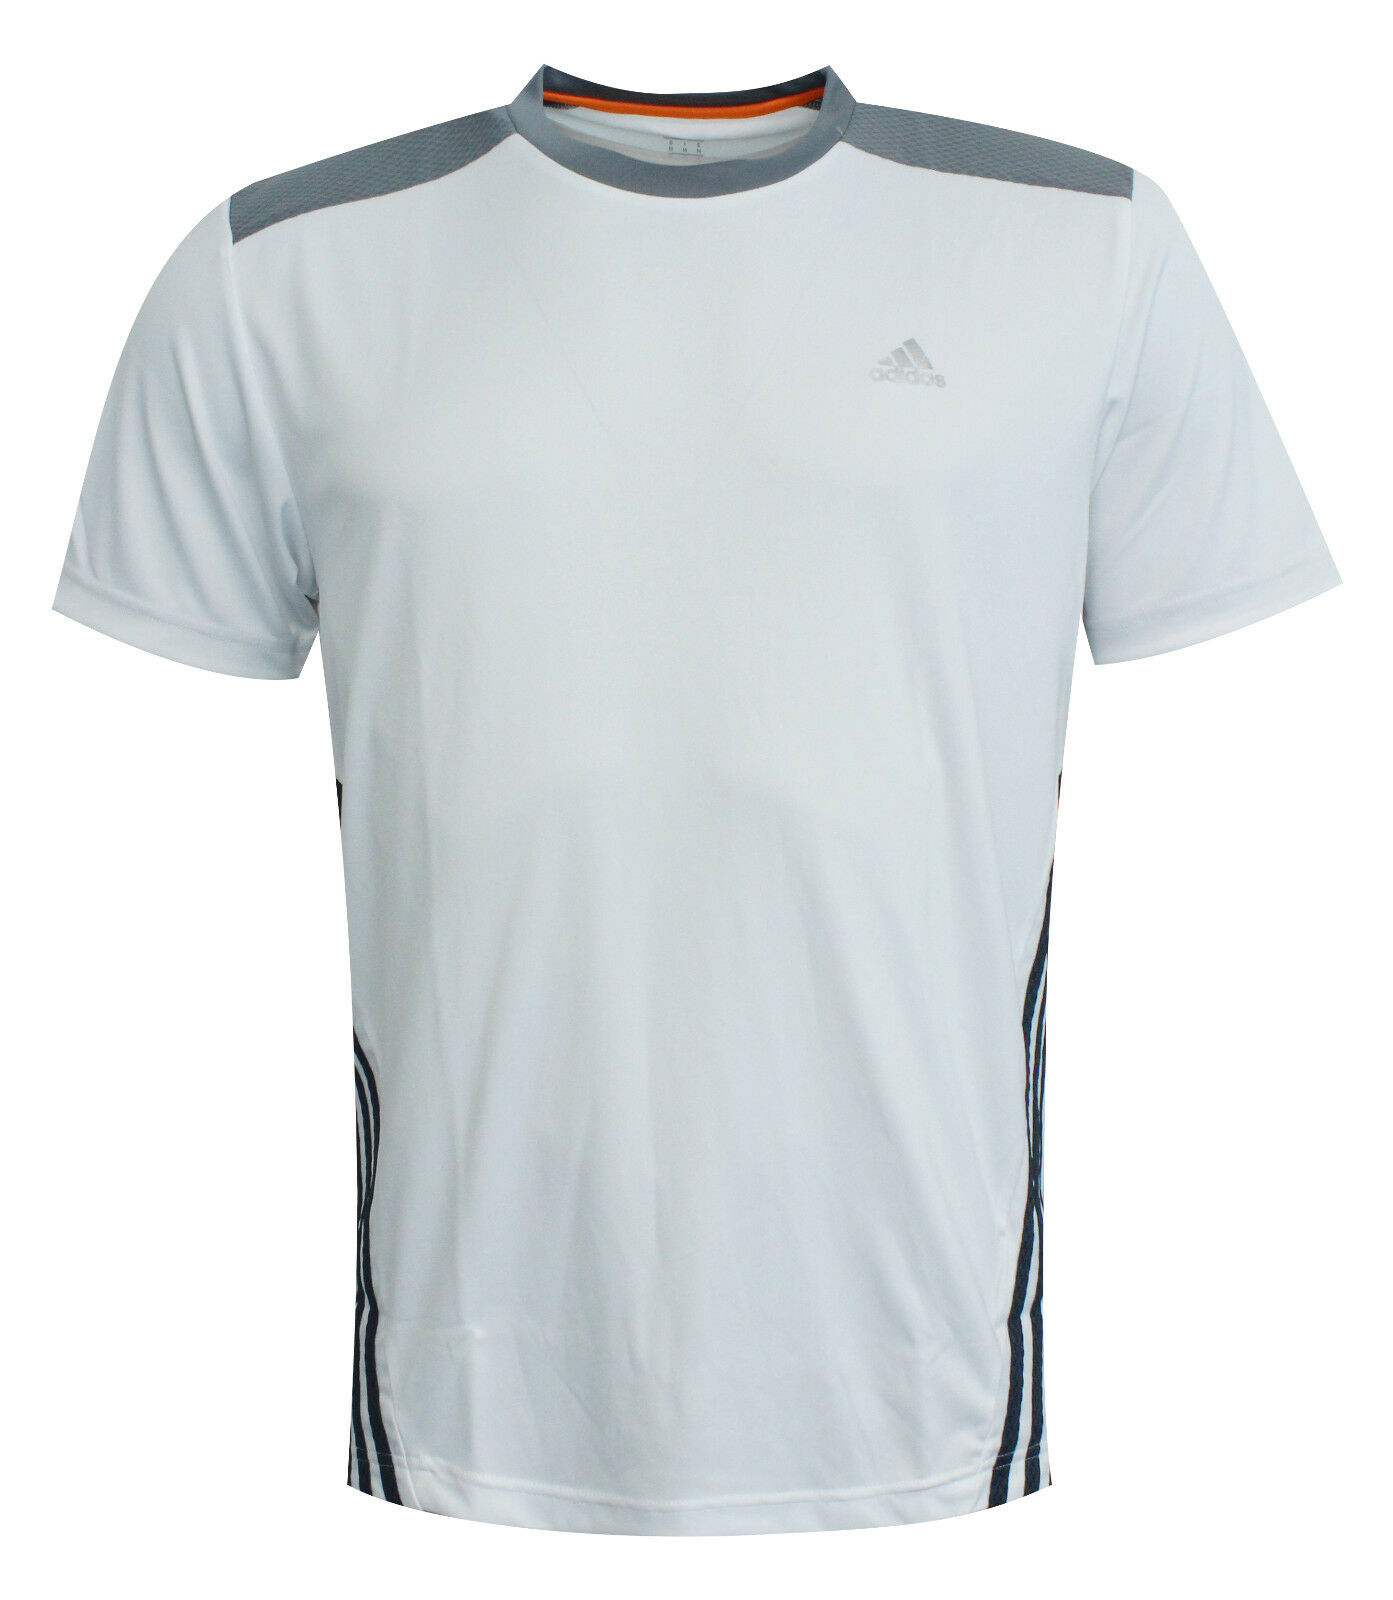 Adidas Performance Clima365 Mens T Shirt Fitness Training Top White M31155 A9D